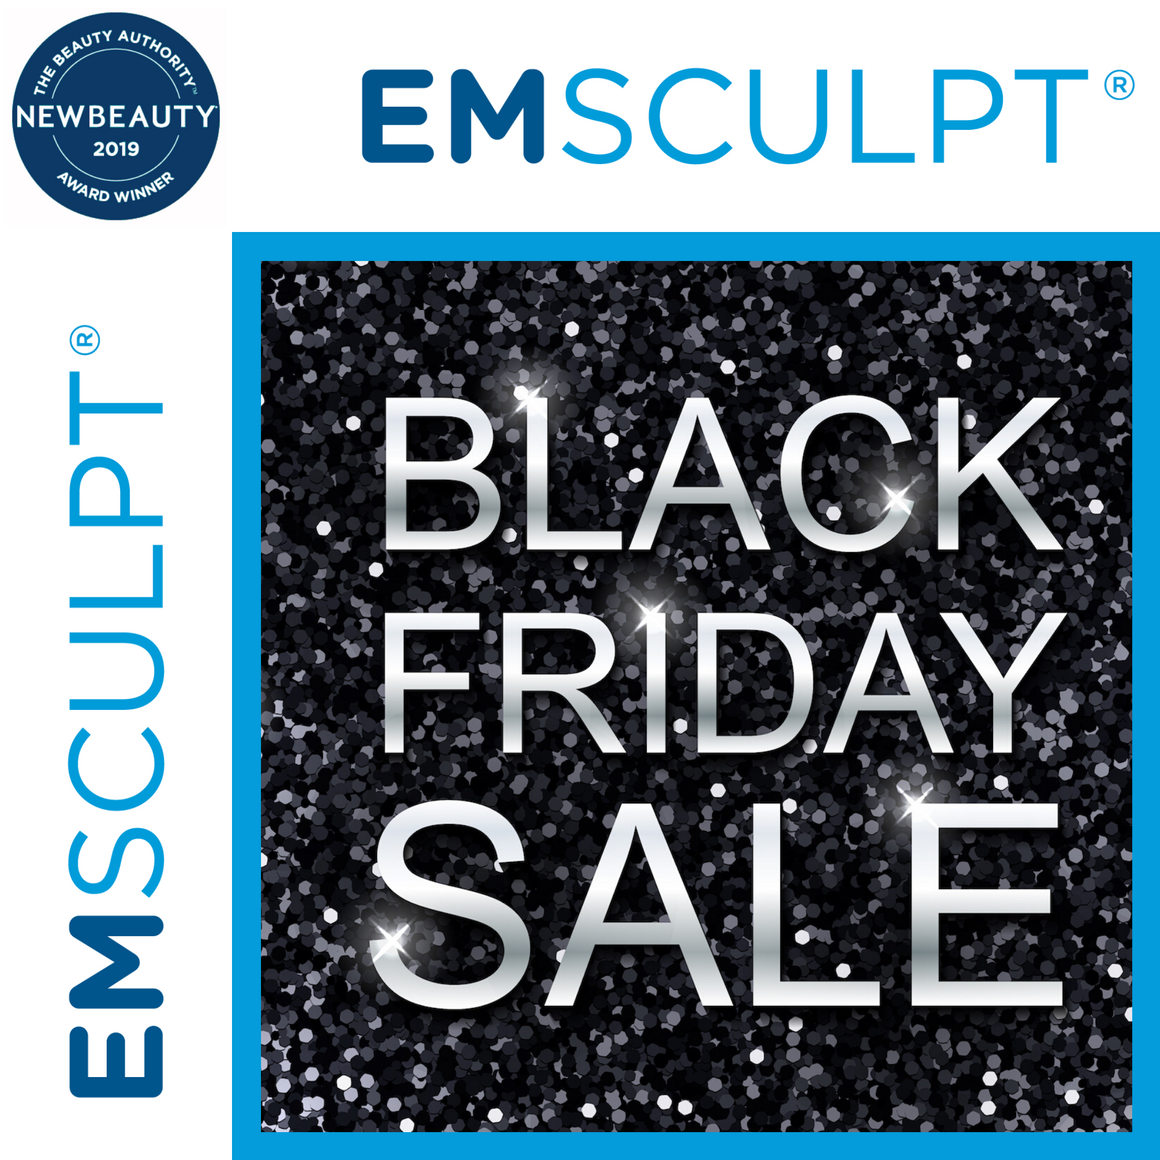 4 TREATMENTS OF EMSCULPT 50% OFF